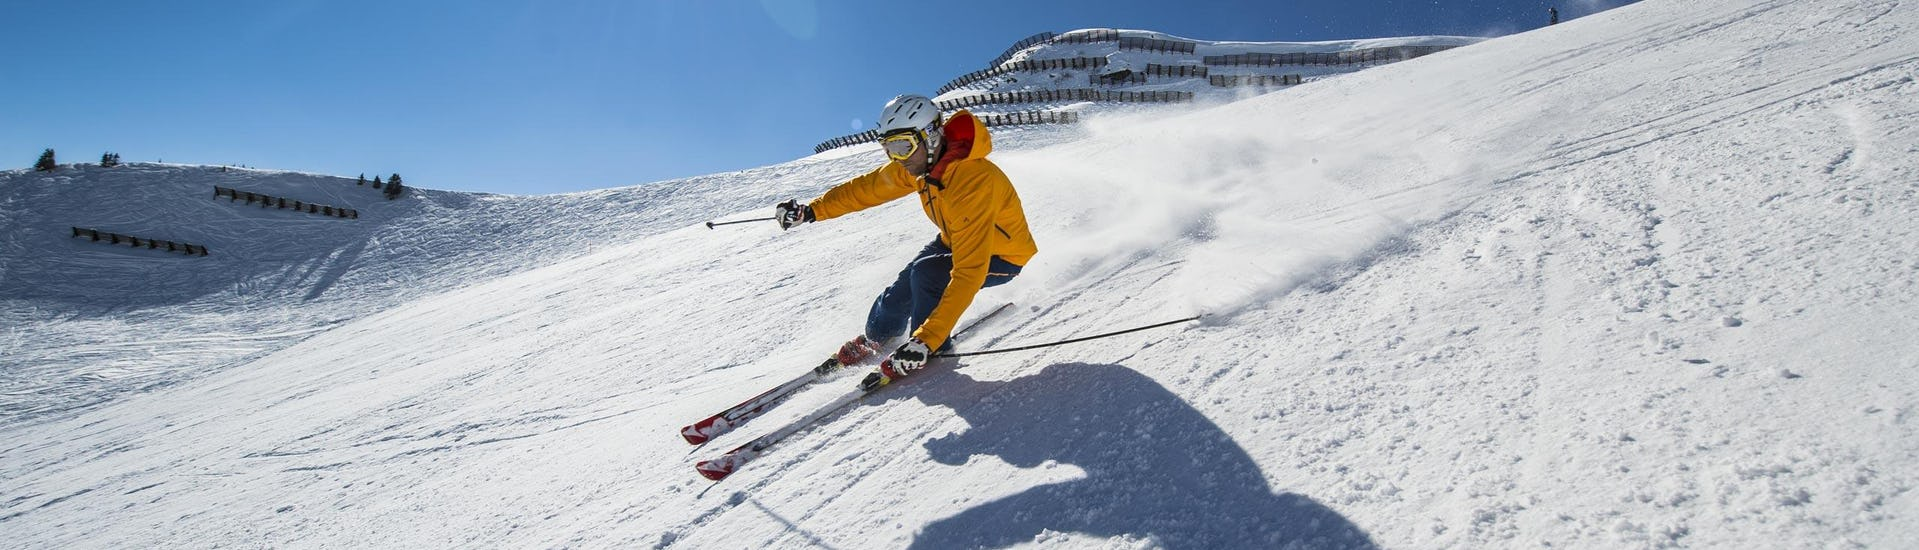 "Ein Skifahrer lernt das Skifahren bei der Aktivität ""Ski Instructor Private for Adults - New Year - All Levels"" mit dem Anbieter ESF Courchevel Village."